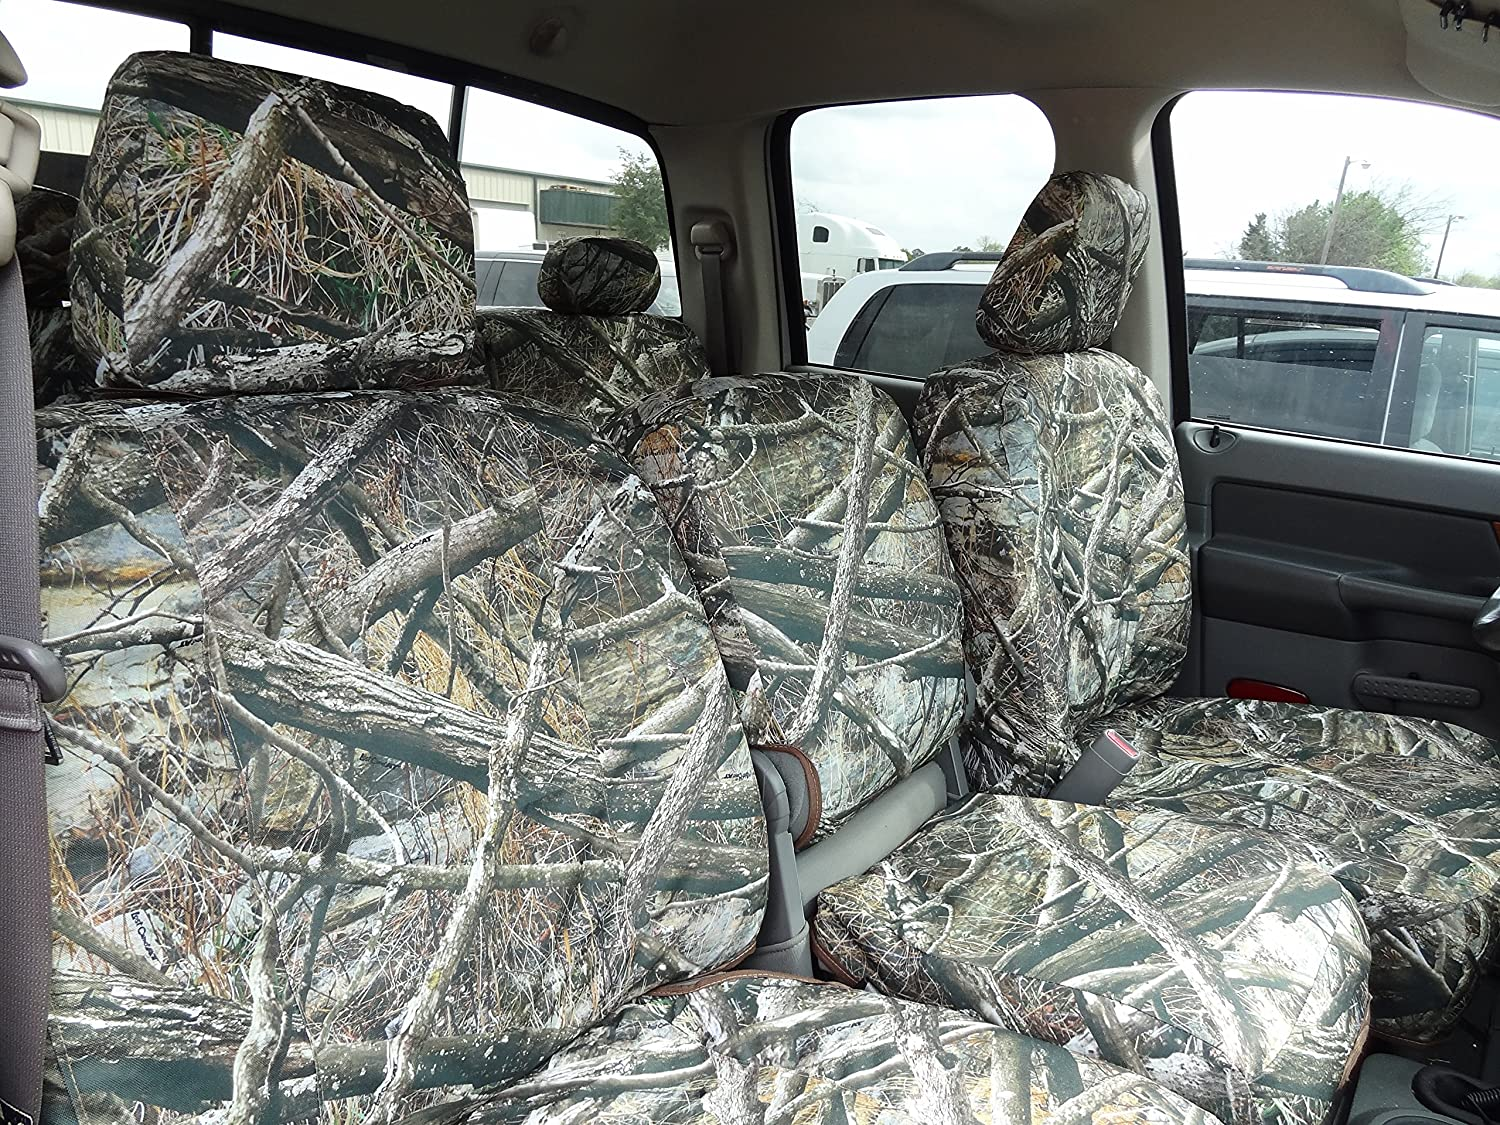 Durafit Seat Covers DG30 2006-2009 Dodge Ram 2500 or 3500 Exact fit Seat Covers in Lost Camo Endura D1322/D1290 Loat At V